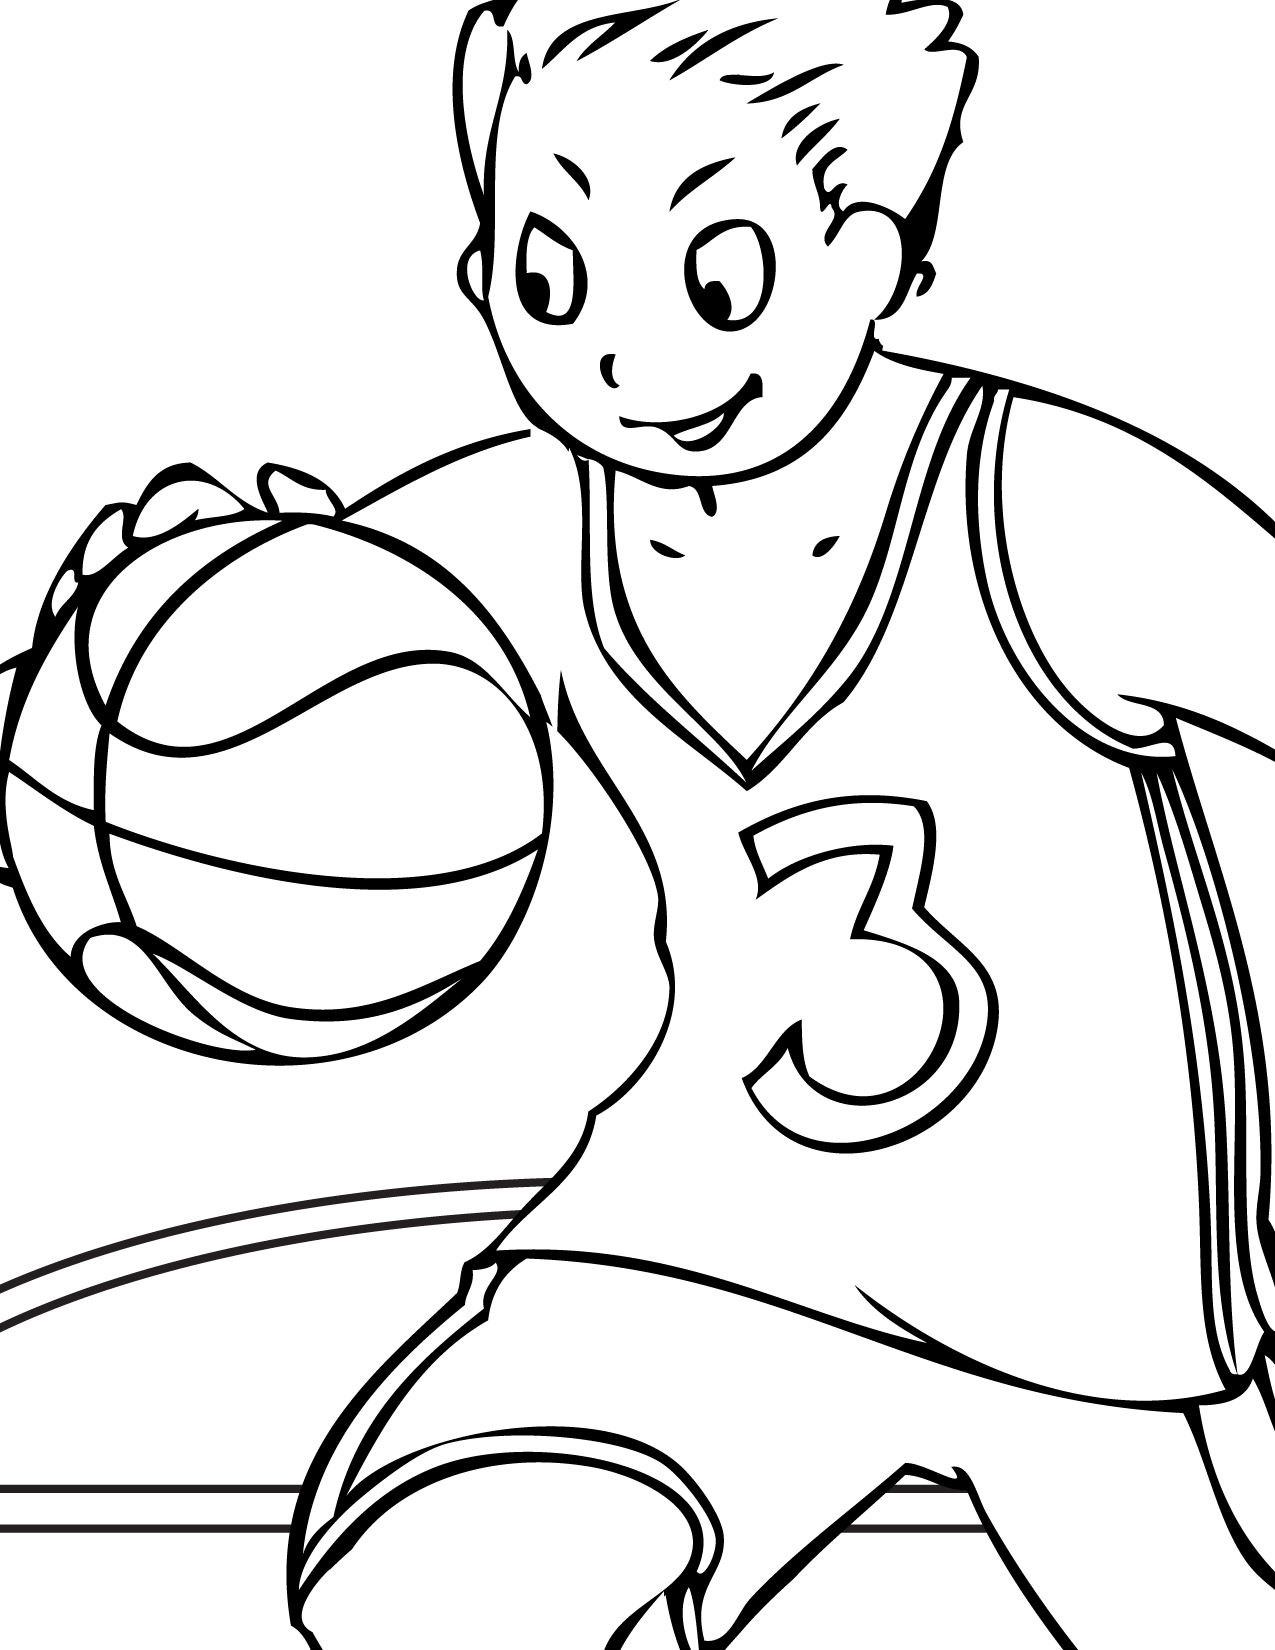 Coloring Pages Sports : Free printable volleyball coloring pages for kids